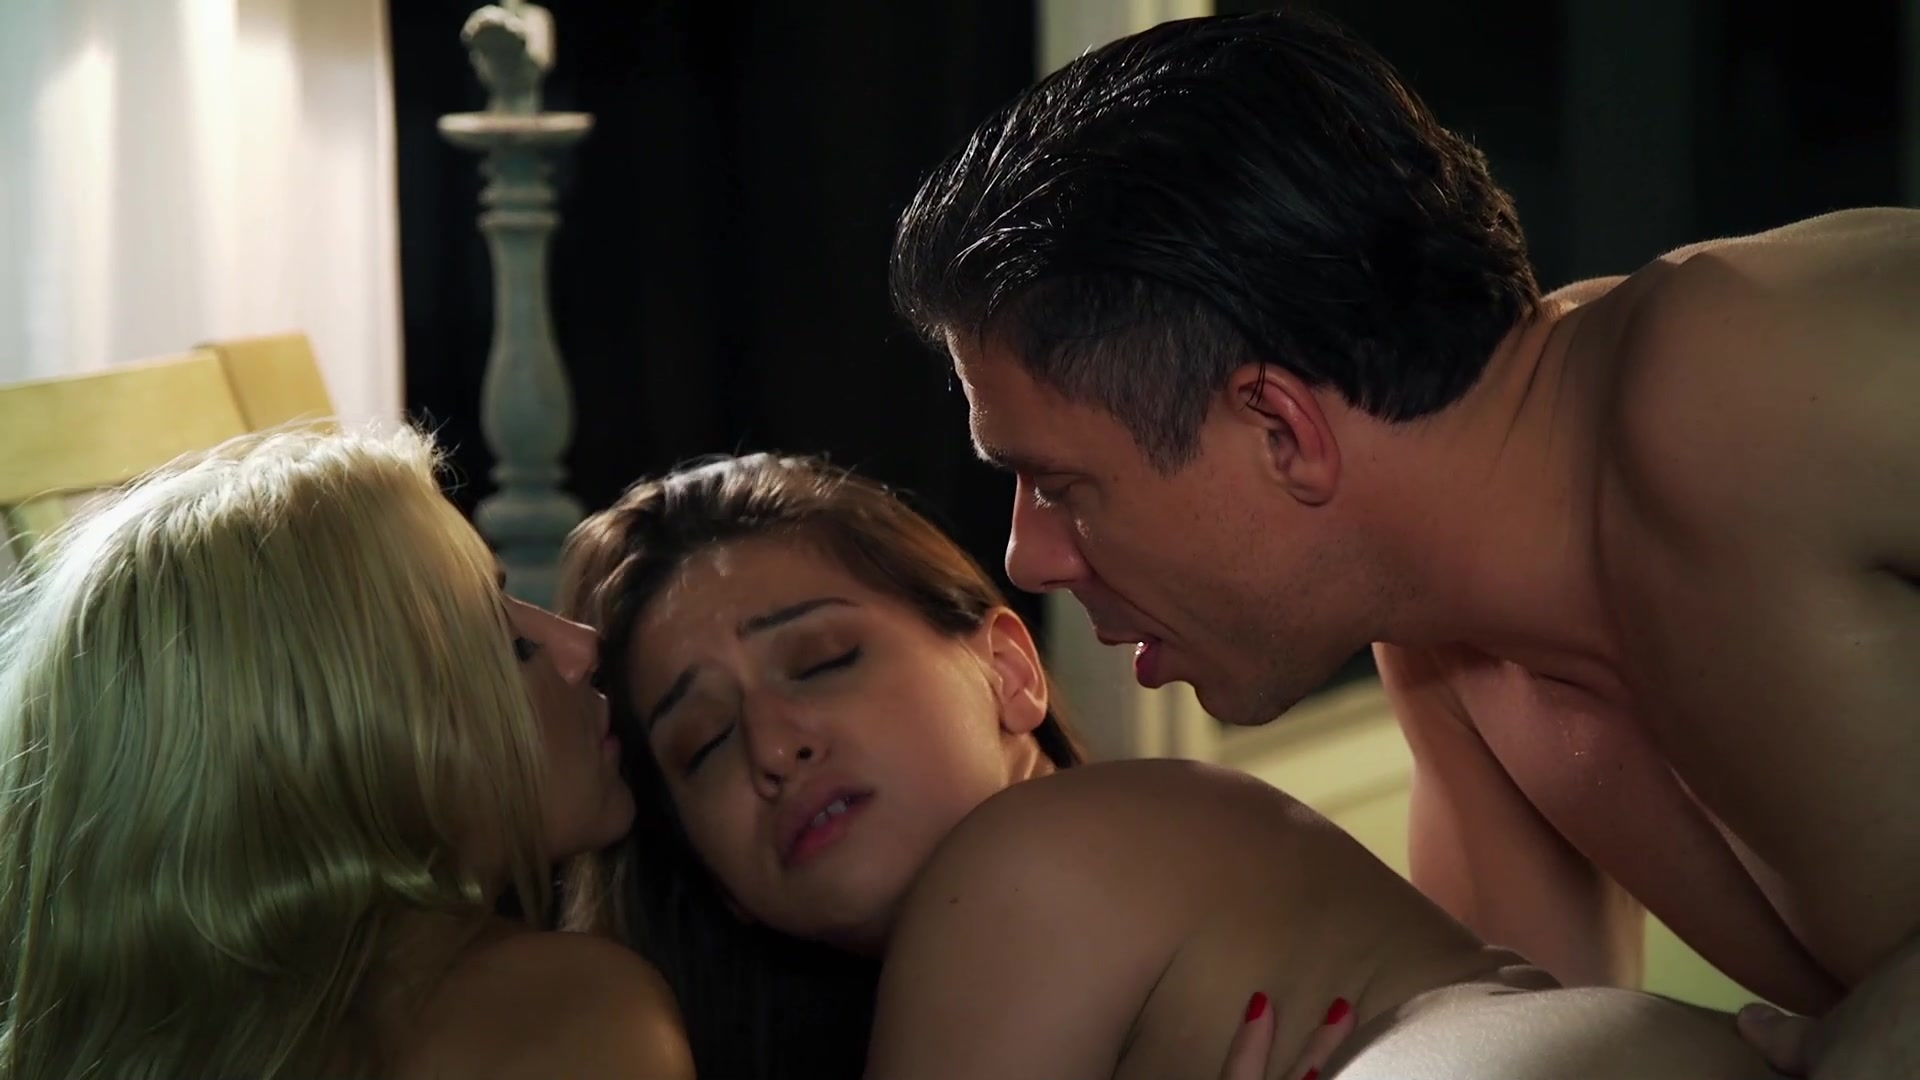 Scene with Mick Blue, Anikka Albrite and Sara Luvv - image 14 out of 20